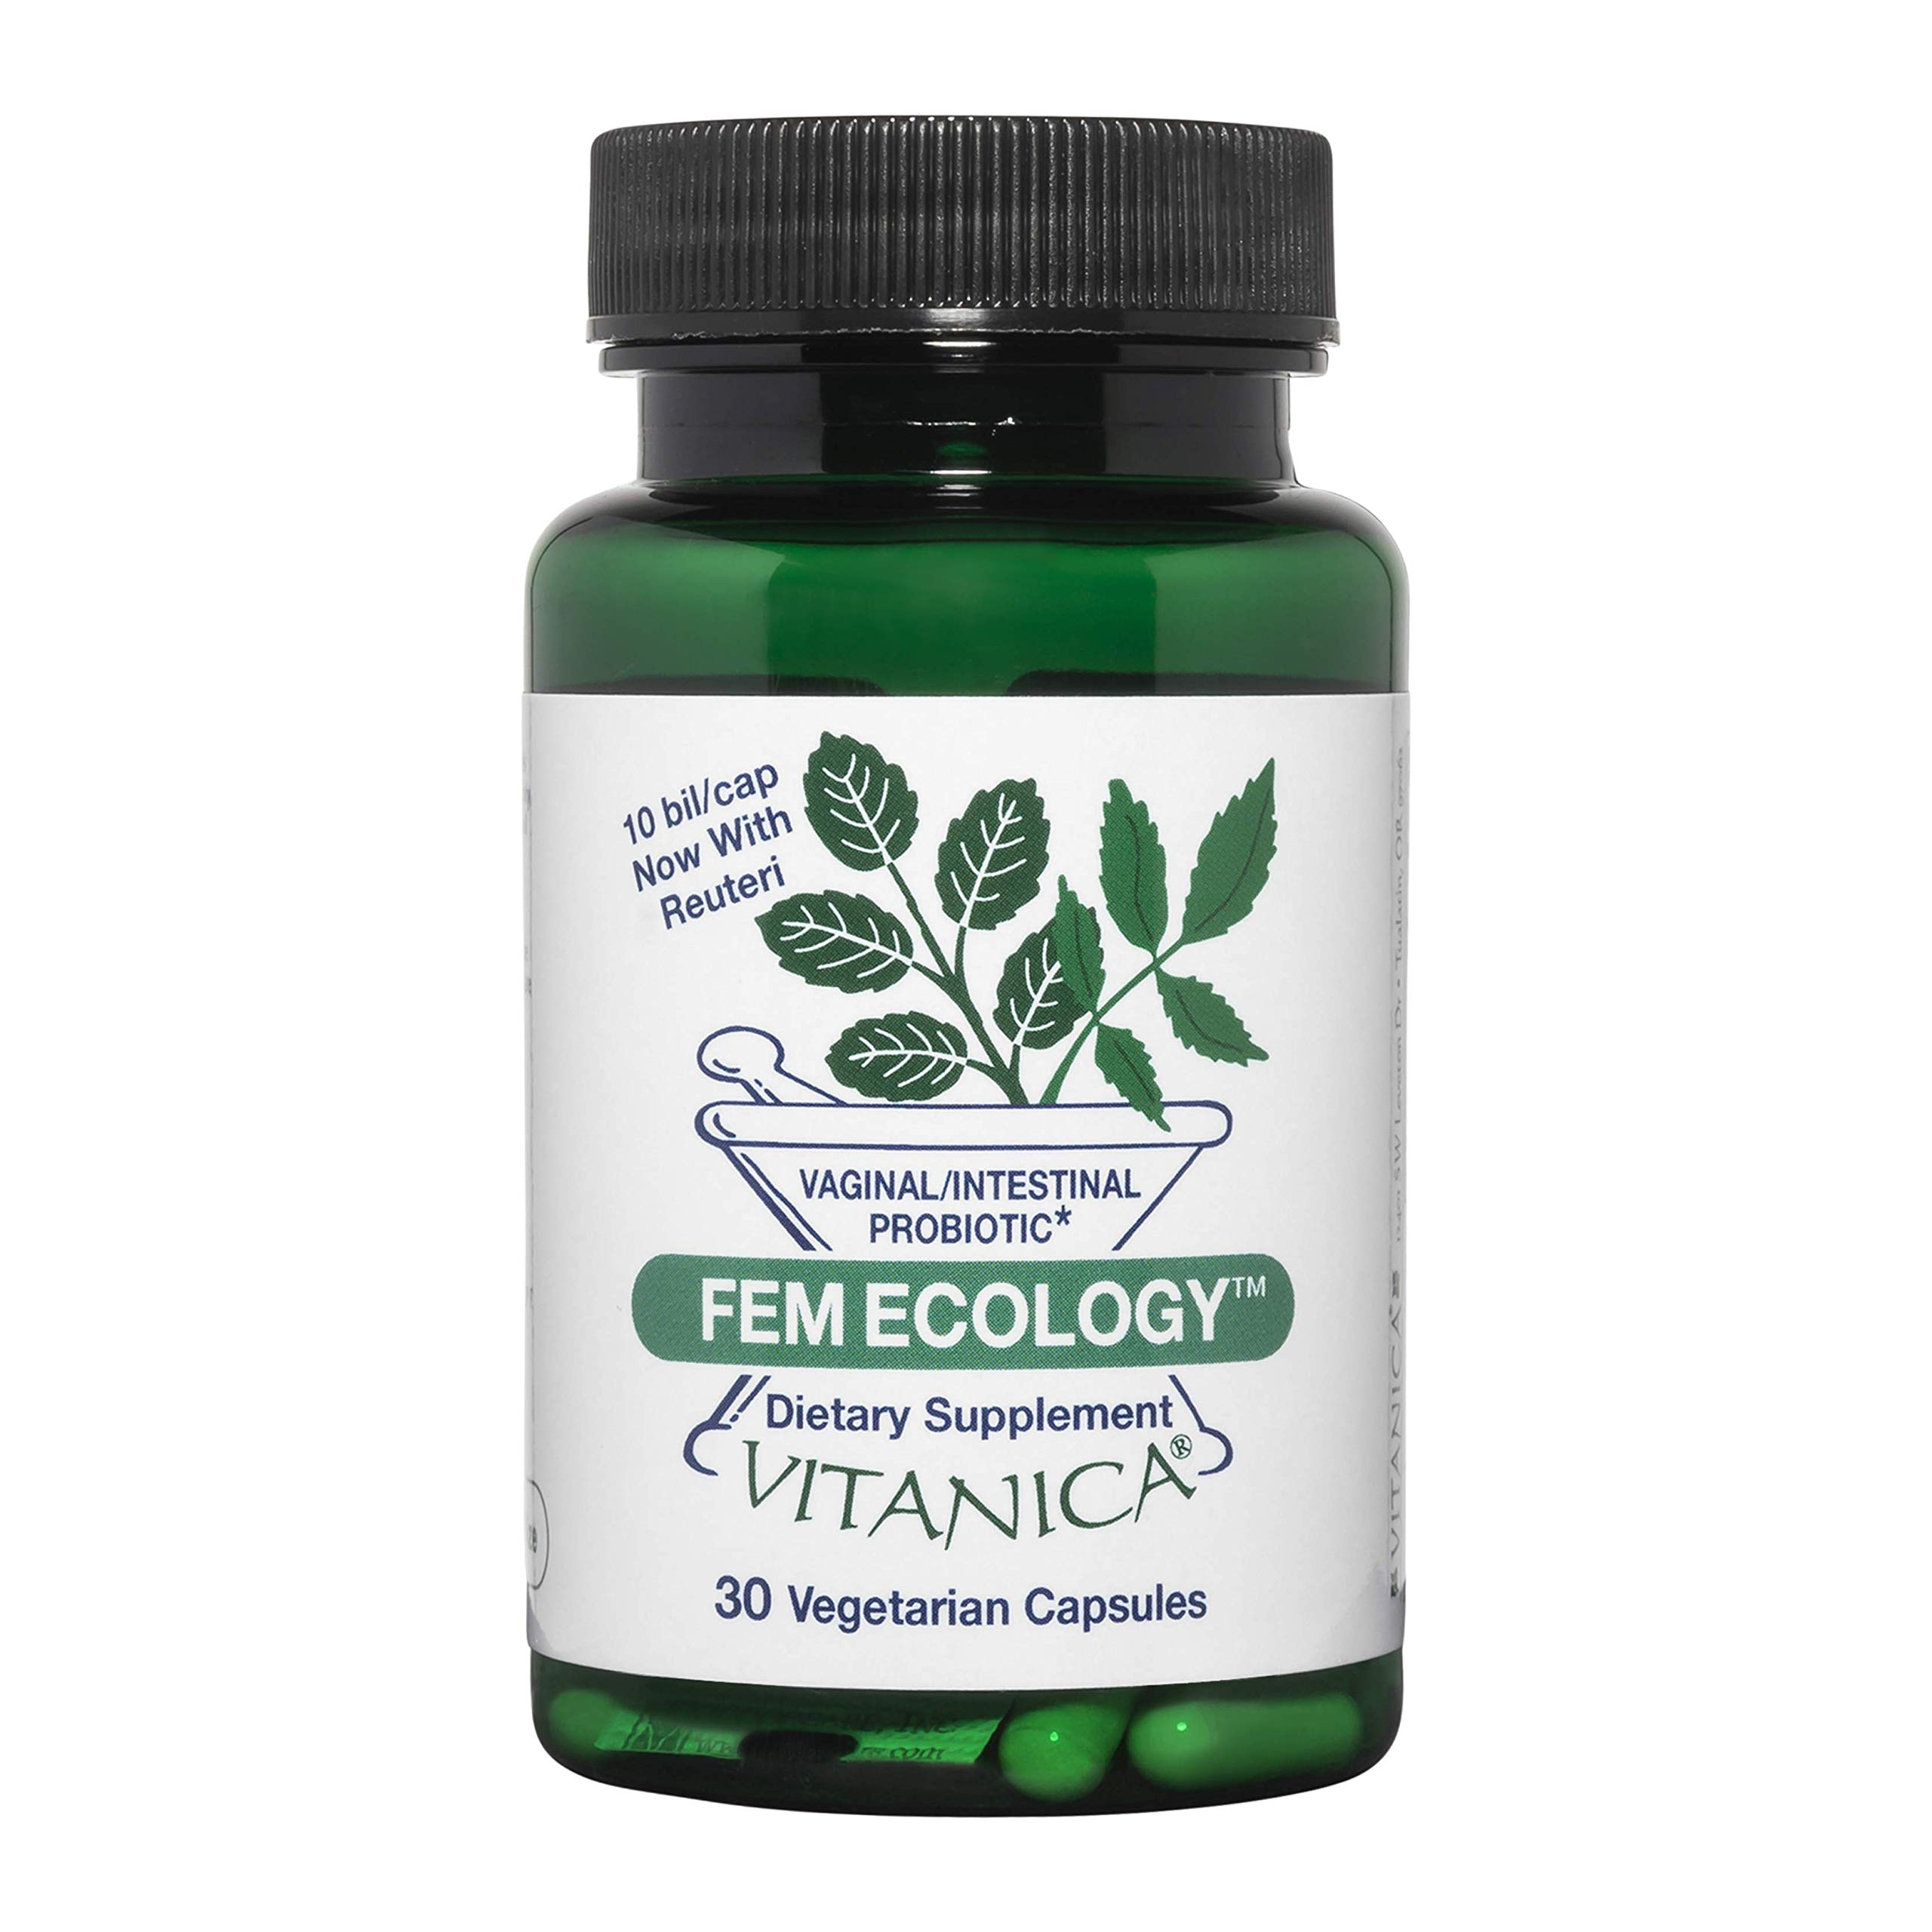 Vitanica FemEcology, Vaginal and Intestinal Probiotic Support, Vegetarian, 30 Capsules